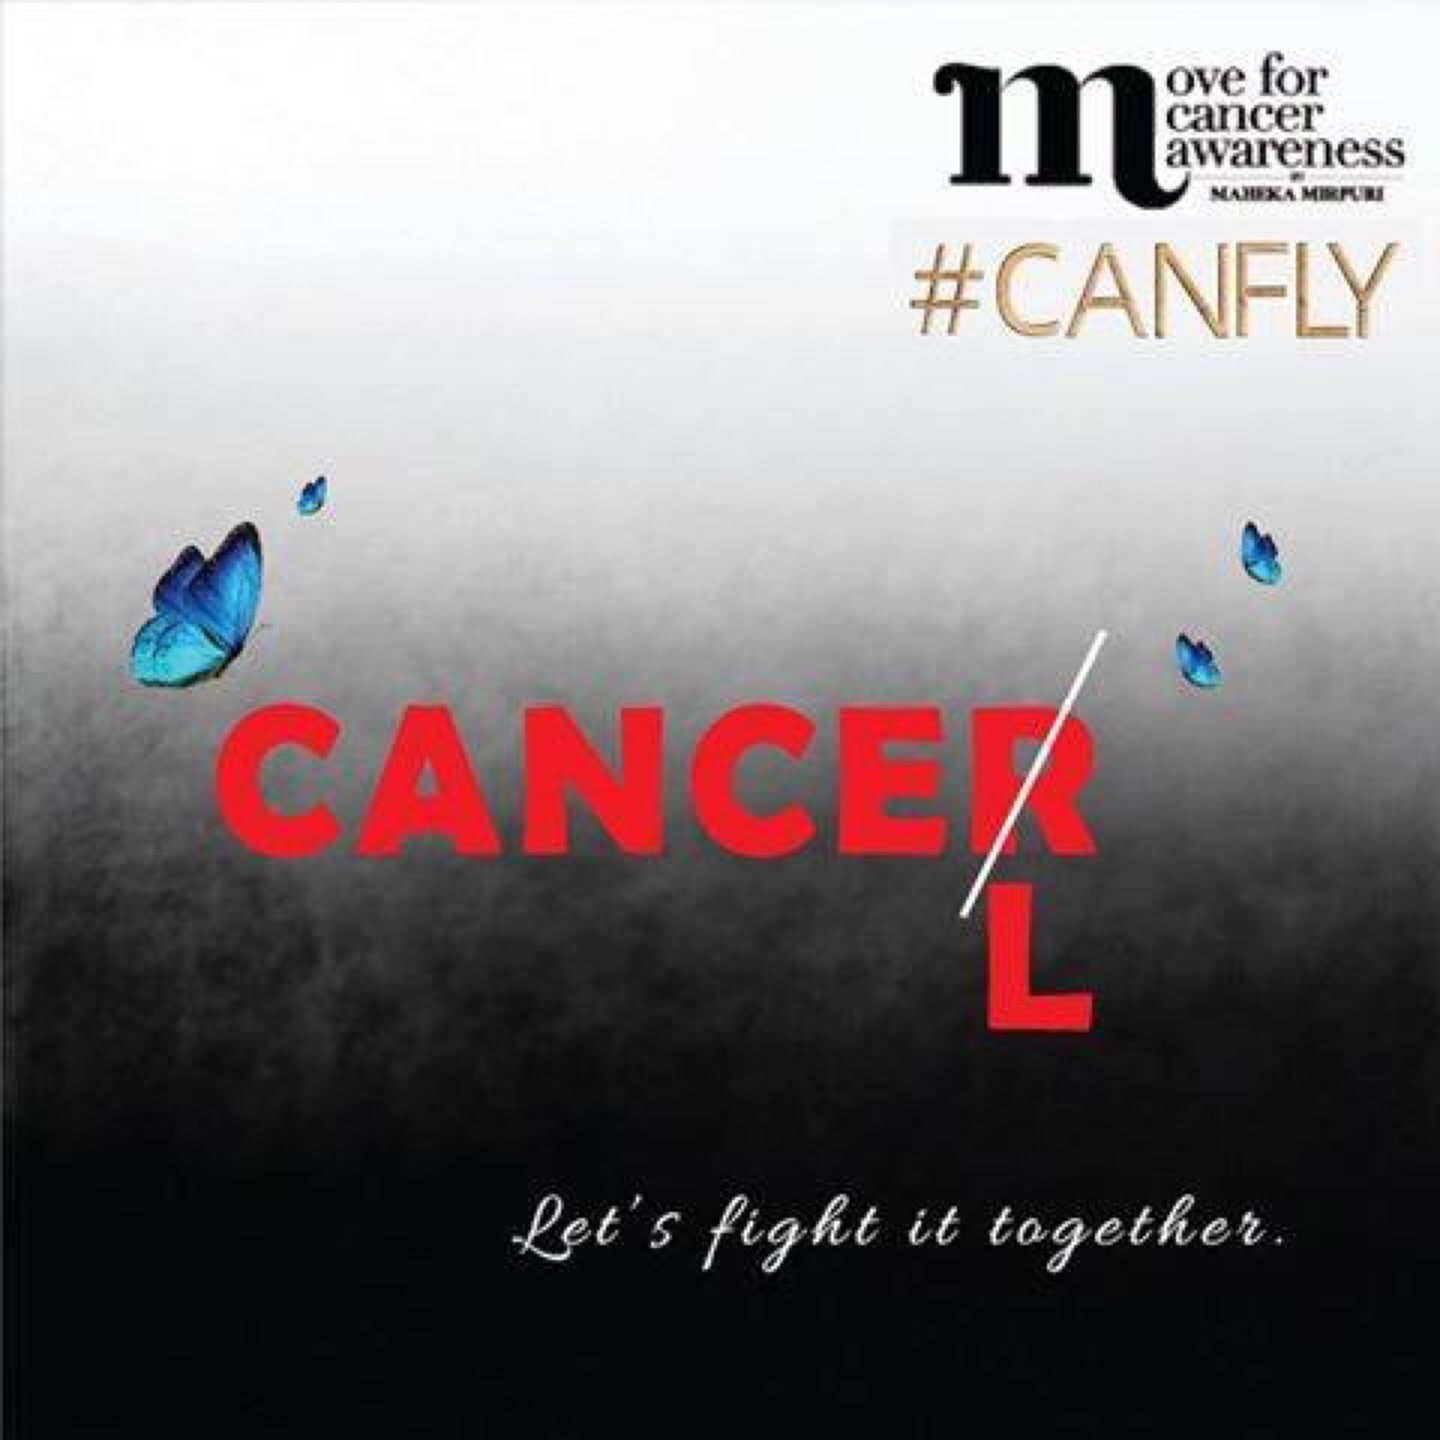 Cancer is a deadly disease. Let's fight it together. #CANFLY